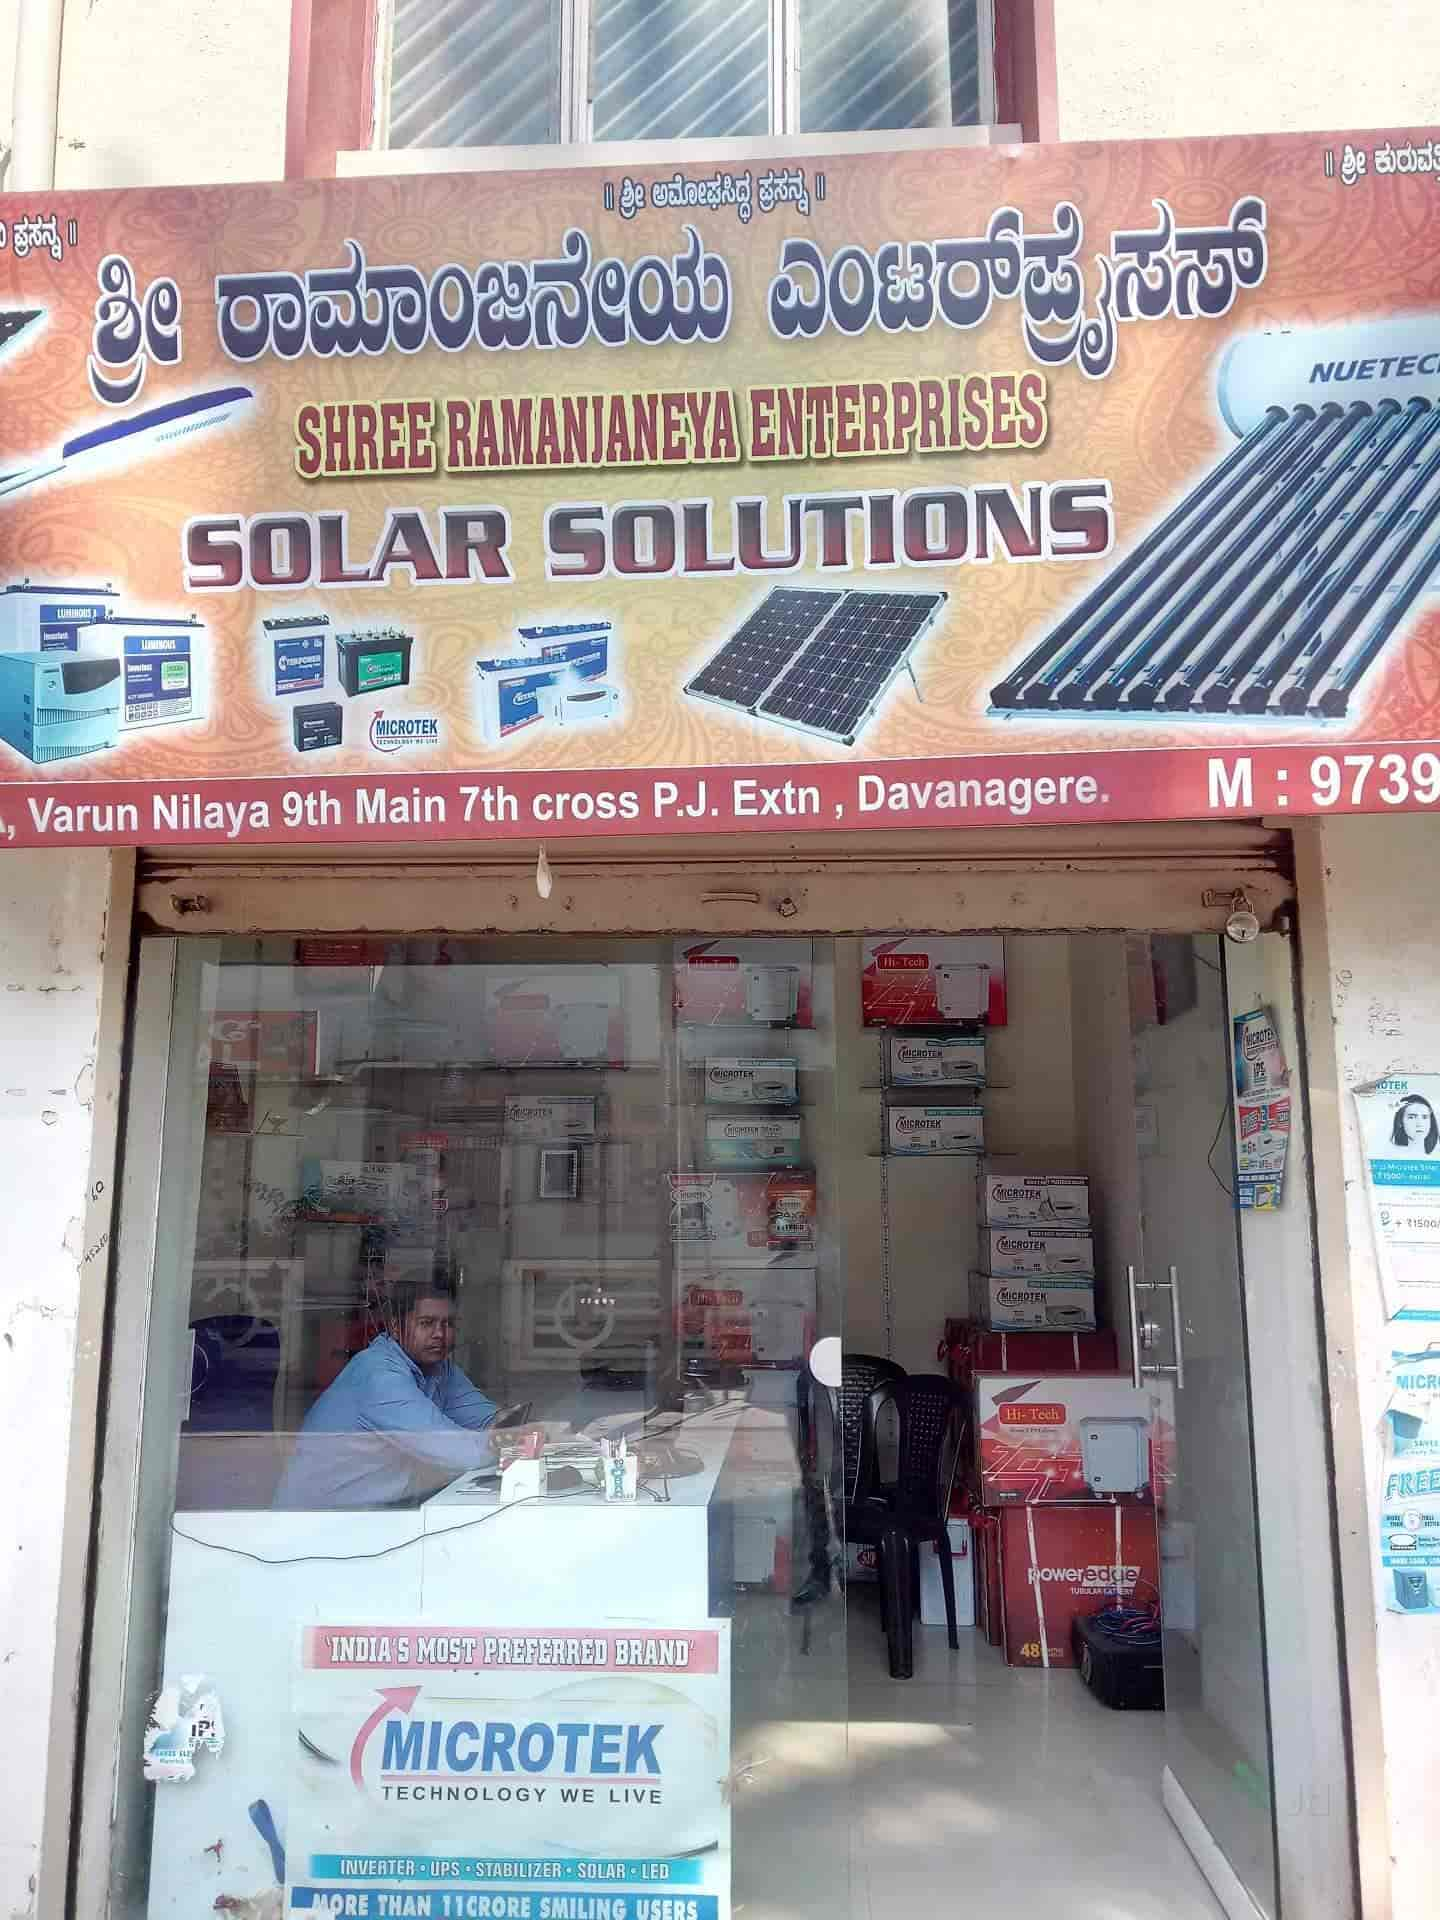 Shree Ramanjaneya Enterprises, Pj Extension Davangere - UPS